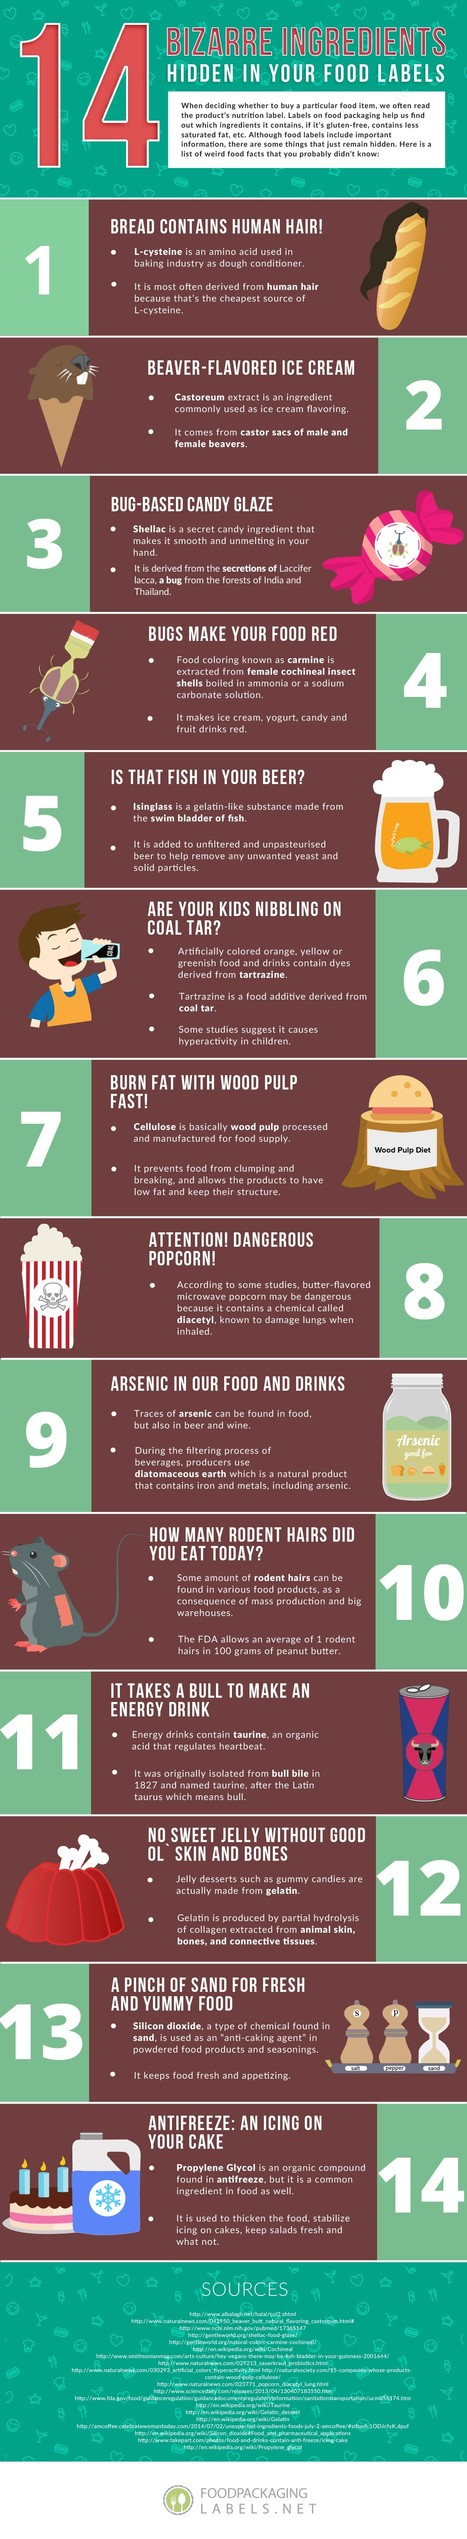 14 Bizarre Ingredients in food you might not know | All Infographics | Scoop.it